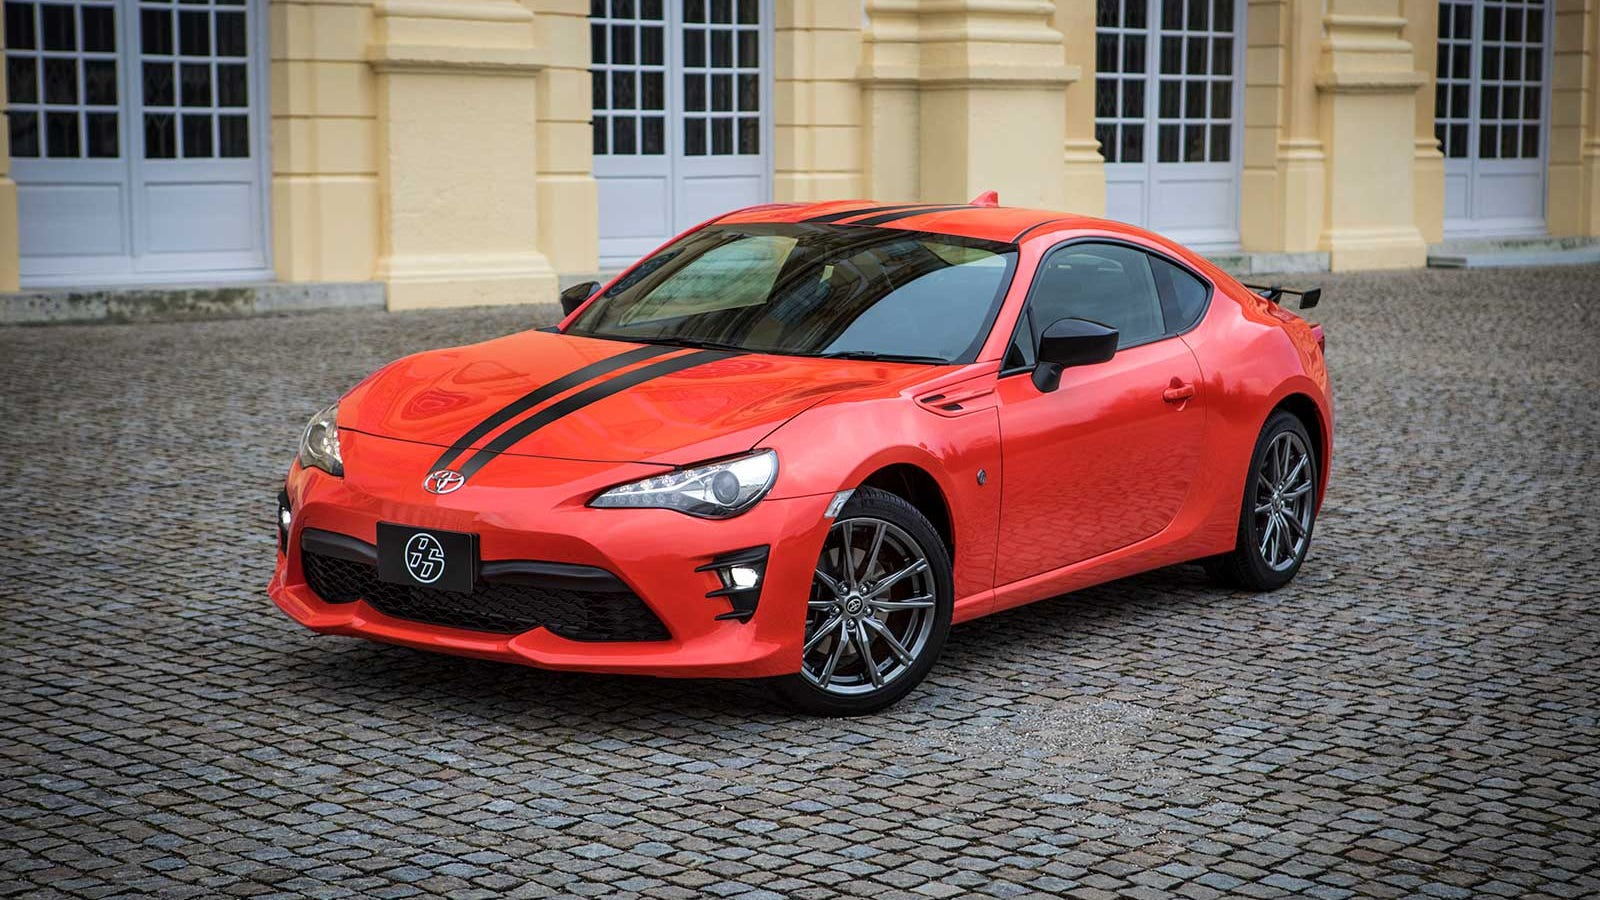 Scion frs News, Videos, Reviews and Gossip - Jalopnik